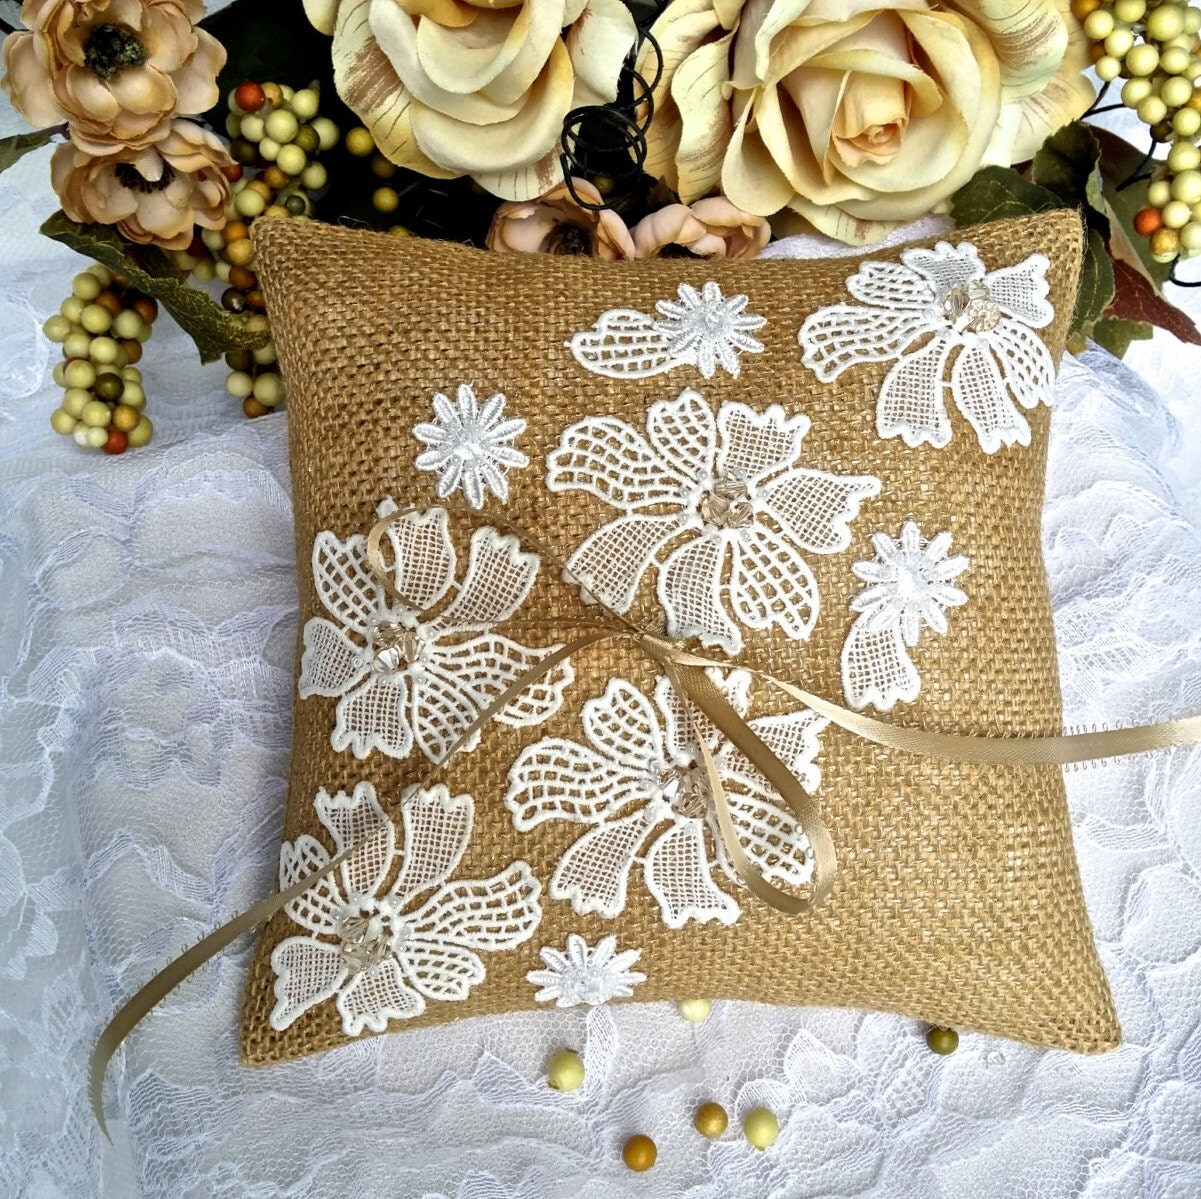 Ring pillow Ring bearer pillow Burlap ring pillow Burlap